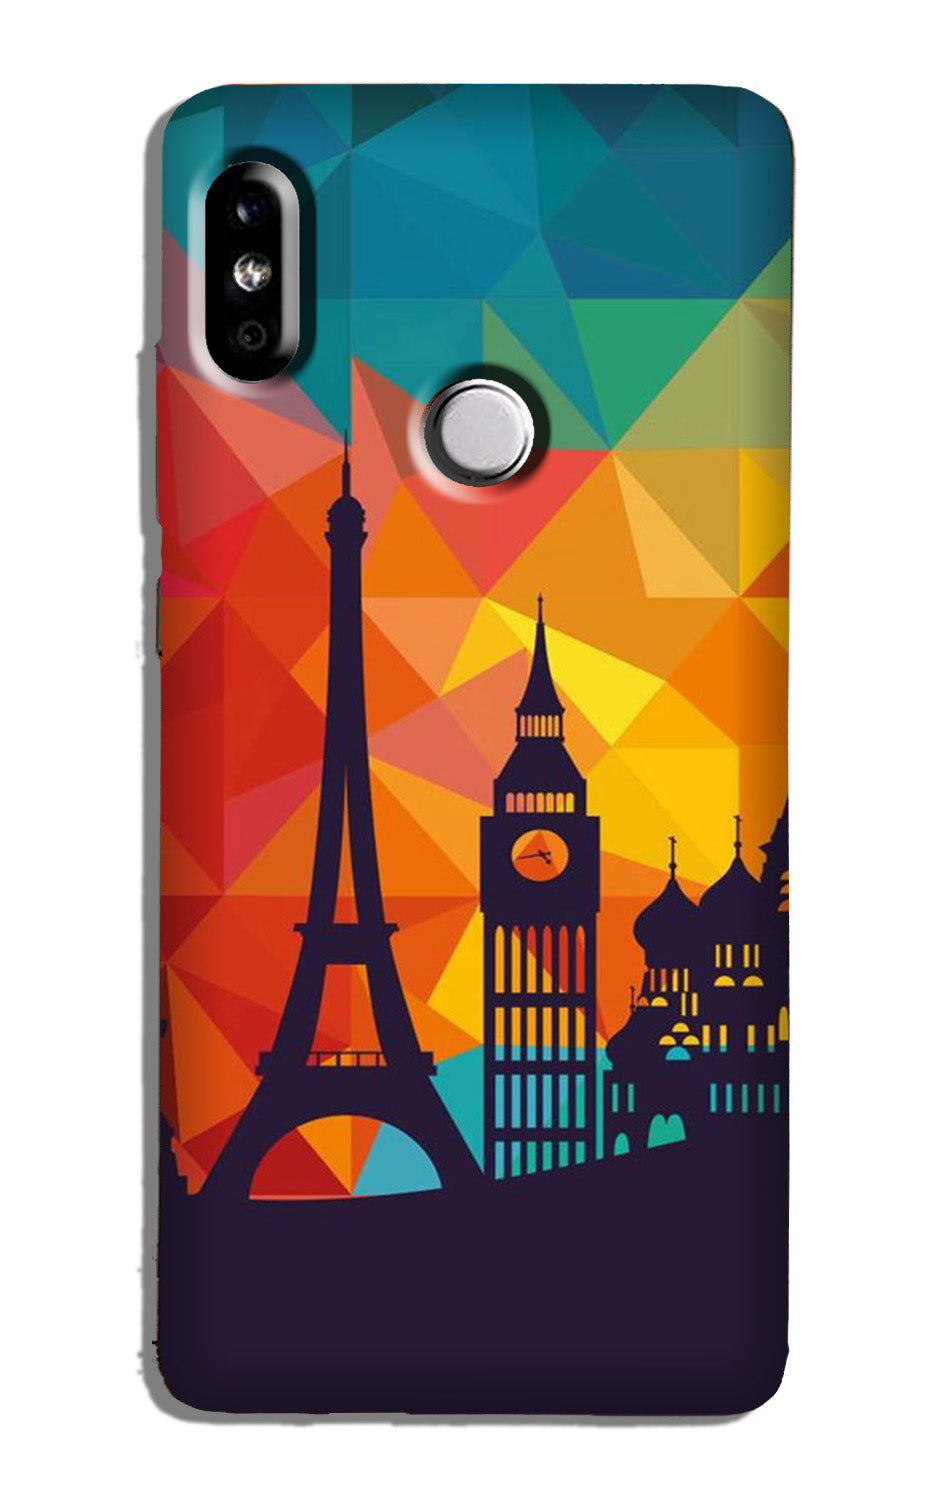 Eiffel Tower Case for Redmi 6 Pro